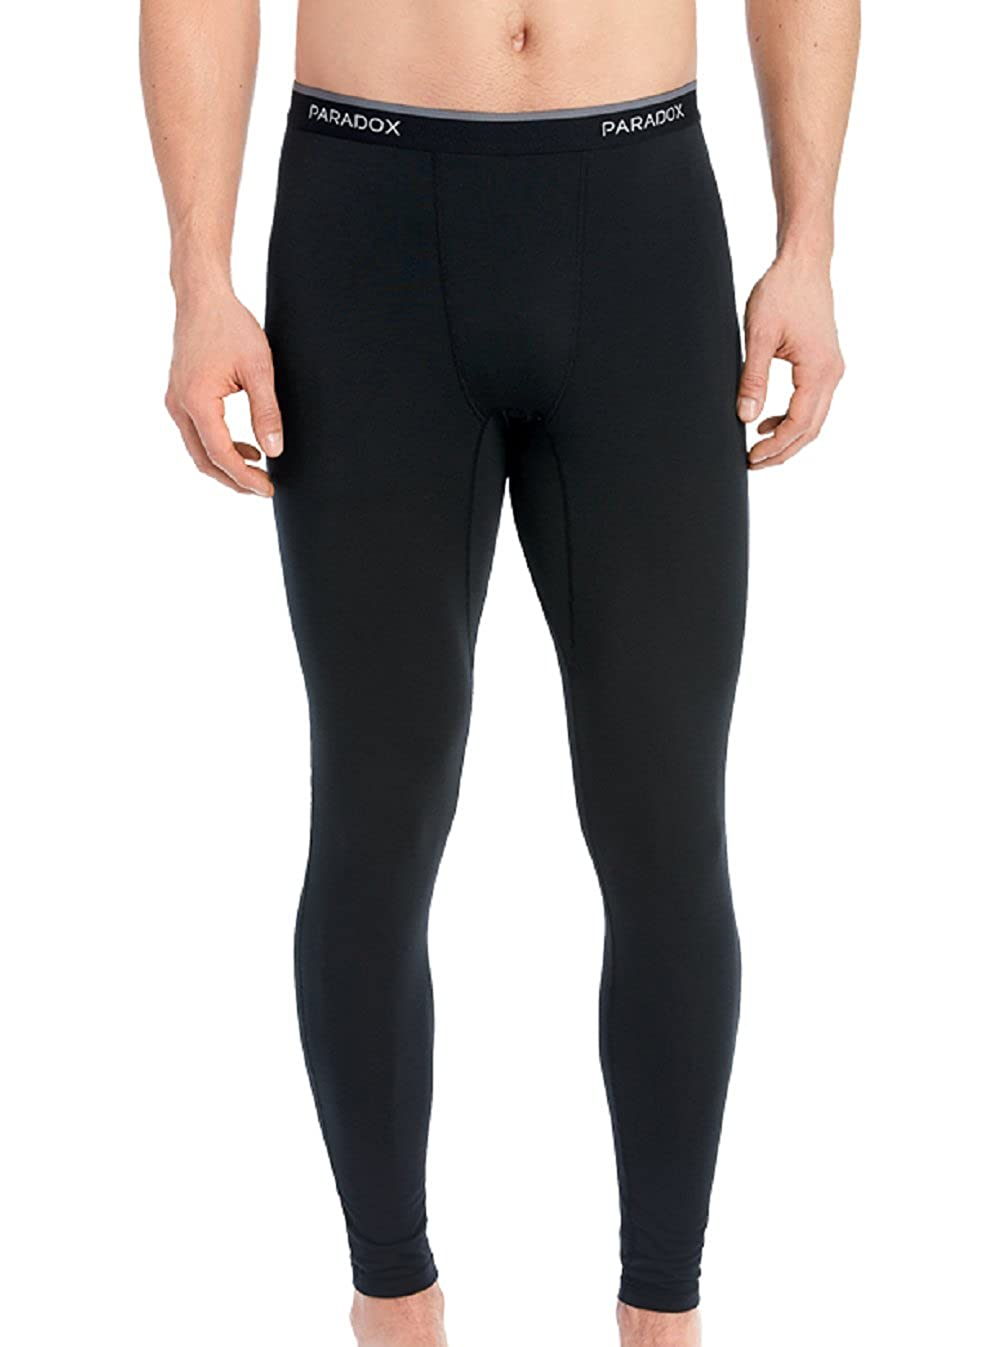 Paradox drirelease Men's Bottom Base Layer